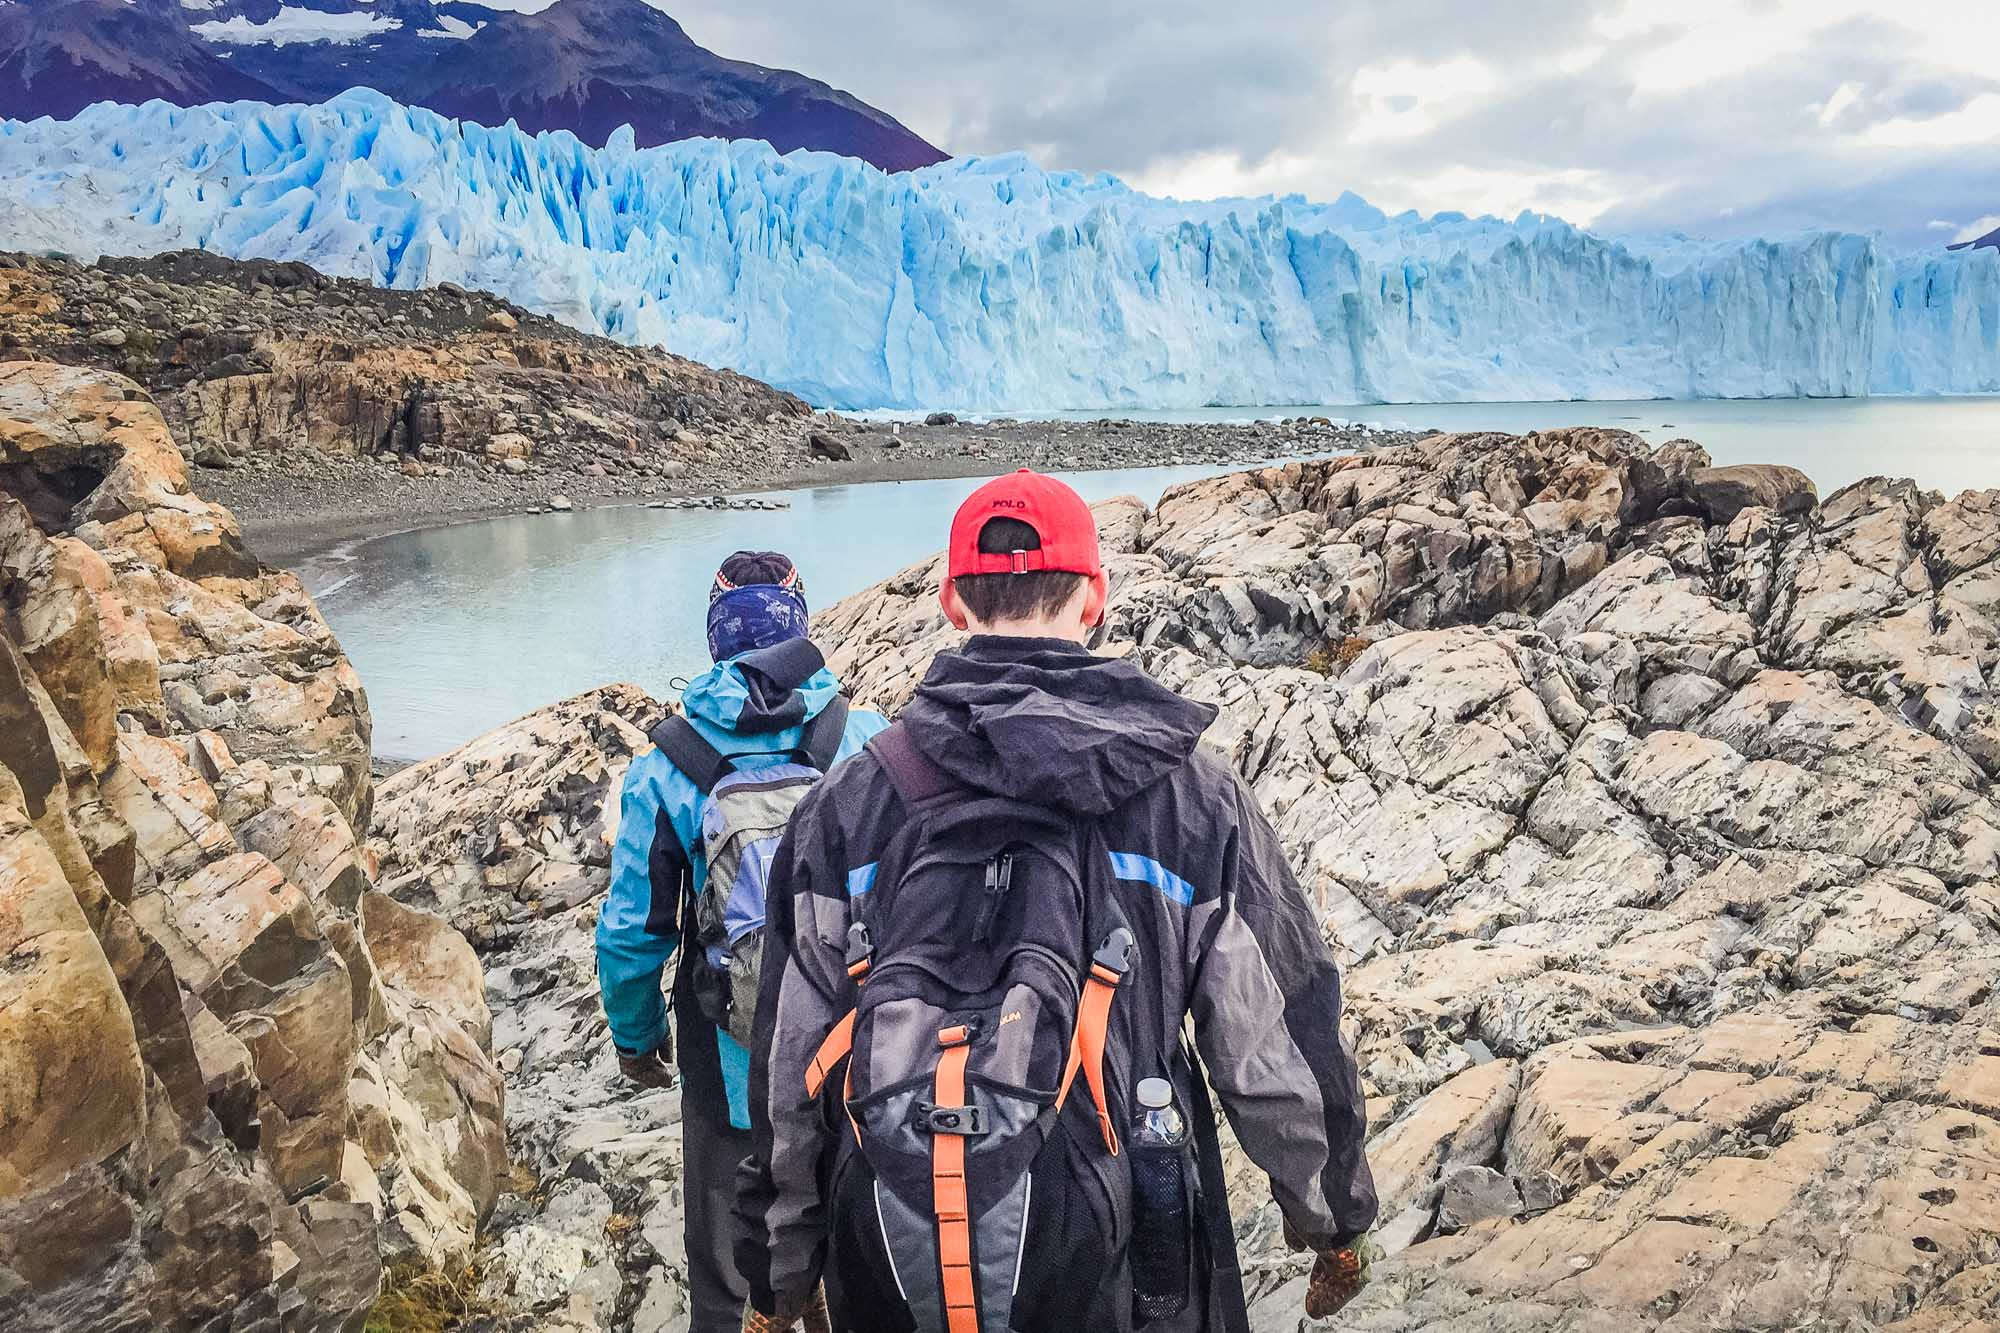 The Ultimate Outdoor Adventure: Patagonia